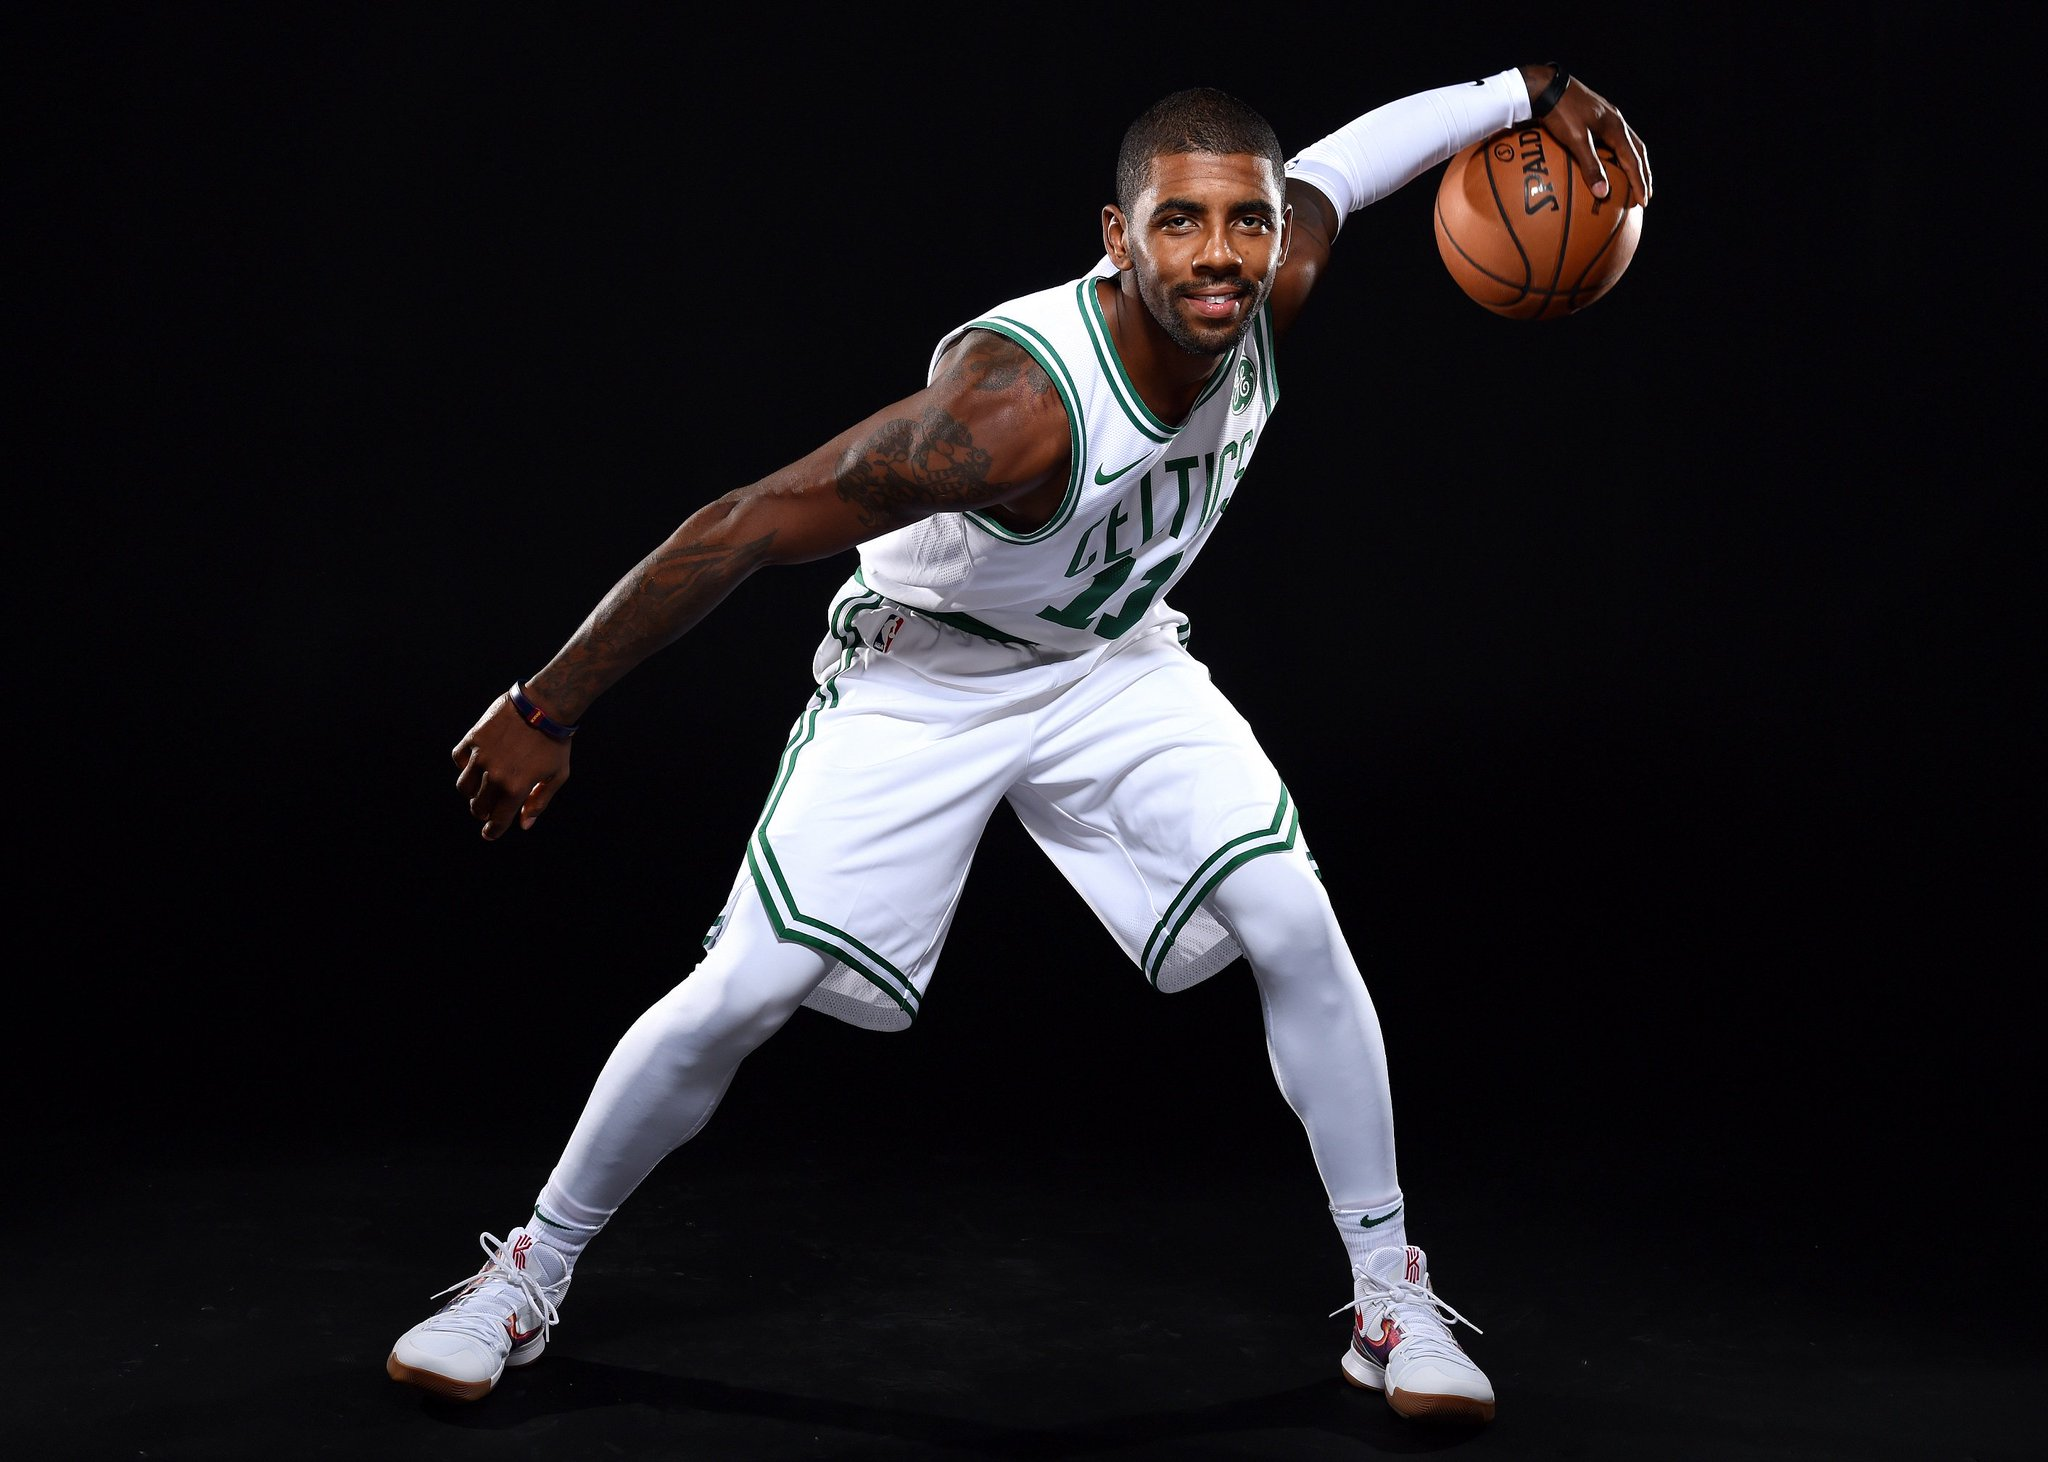 Join us in wishing @KyrieIrving of the @celtics a HAPPY 26th BIRTHDAY!   #NBABDAY #Celtics https://t.co/ba8PL3VznM